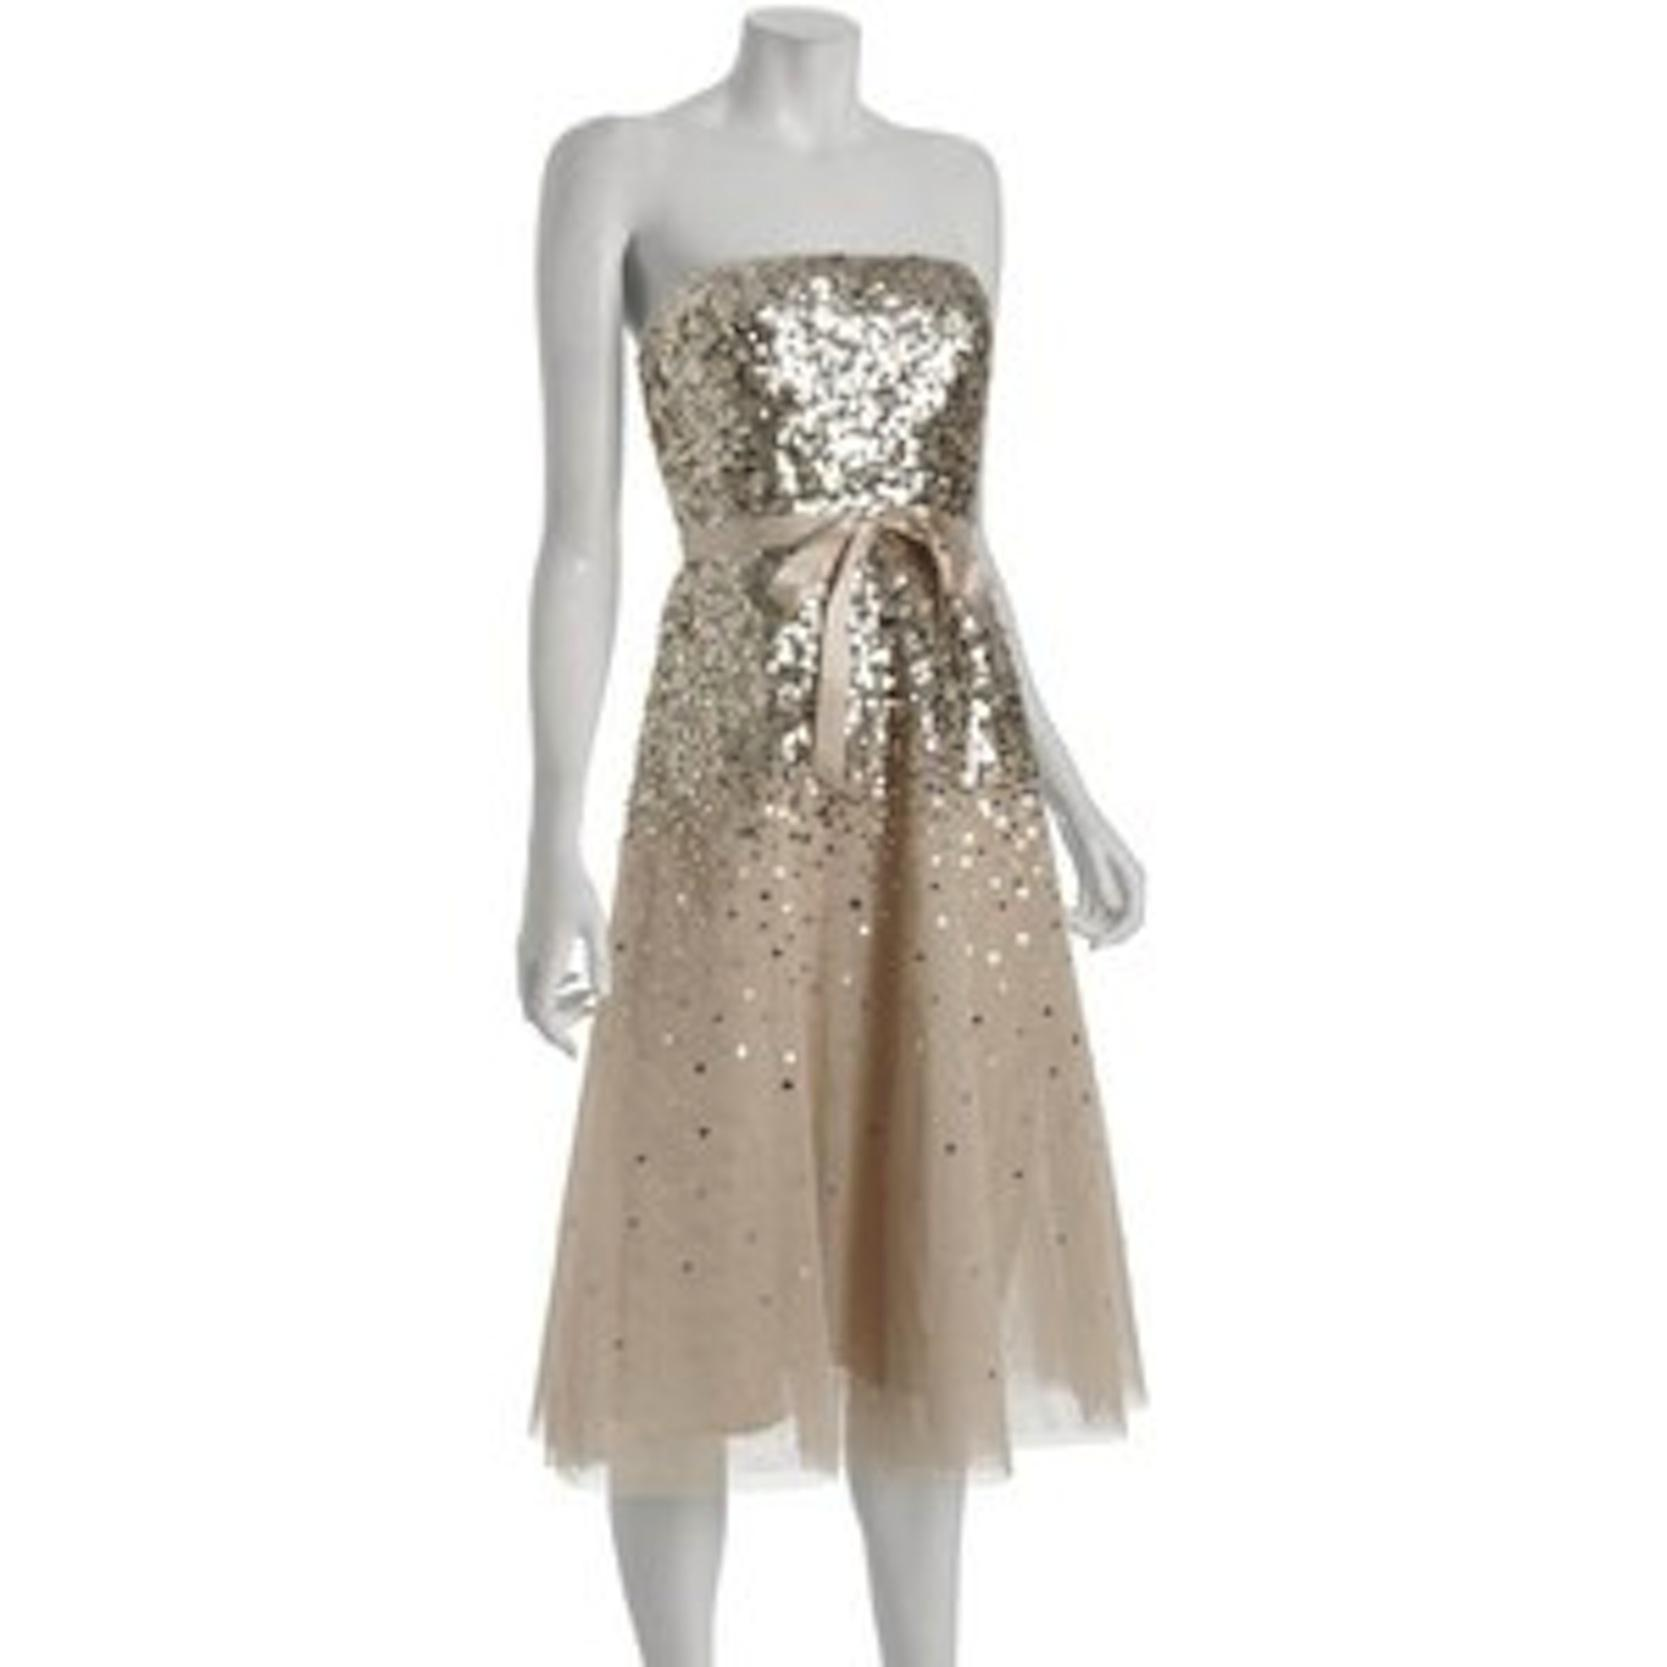 Admirable Bcbgmaxazria Sequin Sequin Bcbg Max Azria Bcbg Bcbg Max Azria Holiday Newyears Eve Dress Bcbgmaxazria G Sequin Sequin Holiday New Years Eve Knee Length wedding dress New Years Eve Dress